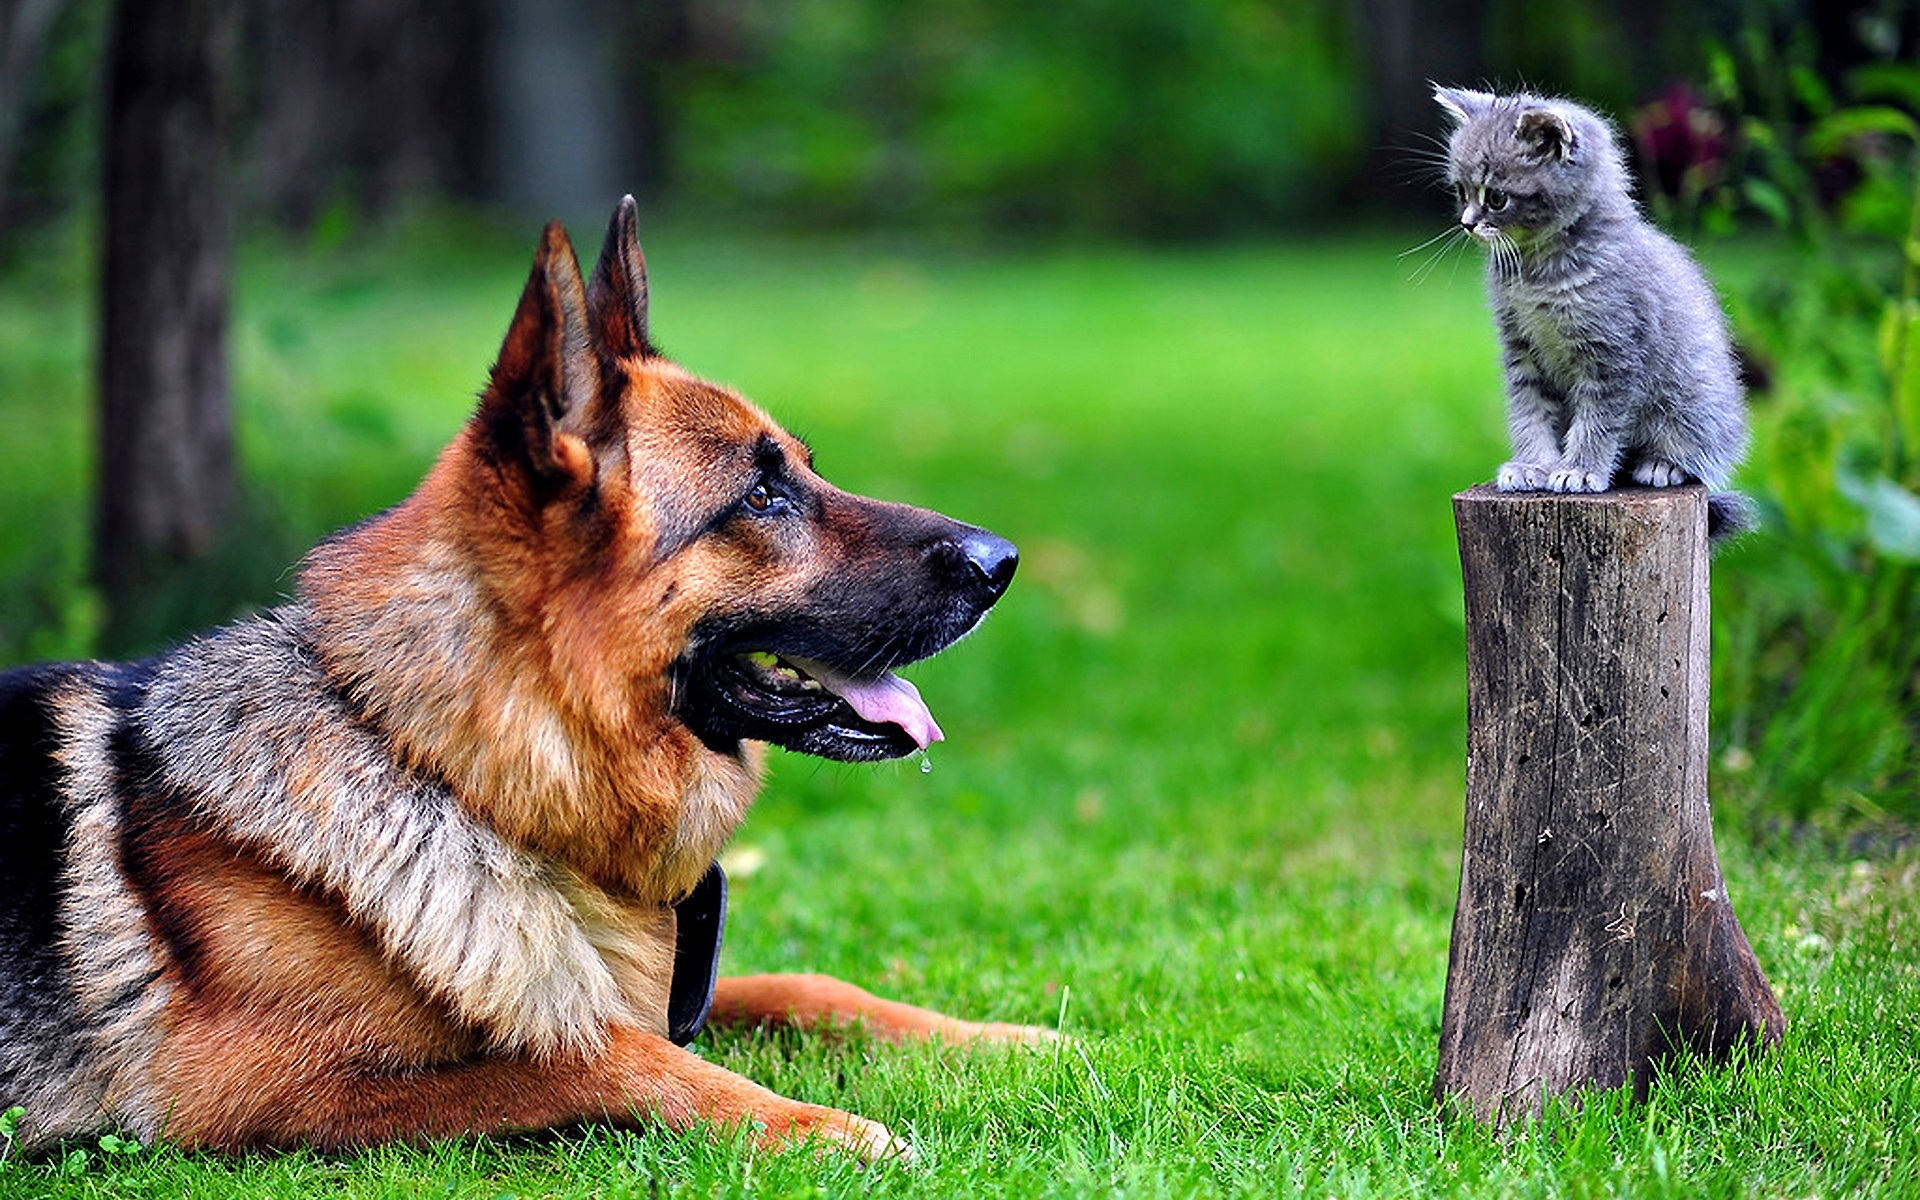 German Shepherd, dog, photo, kitty, cute